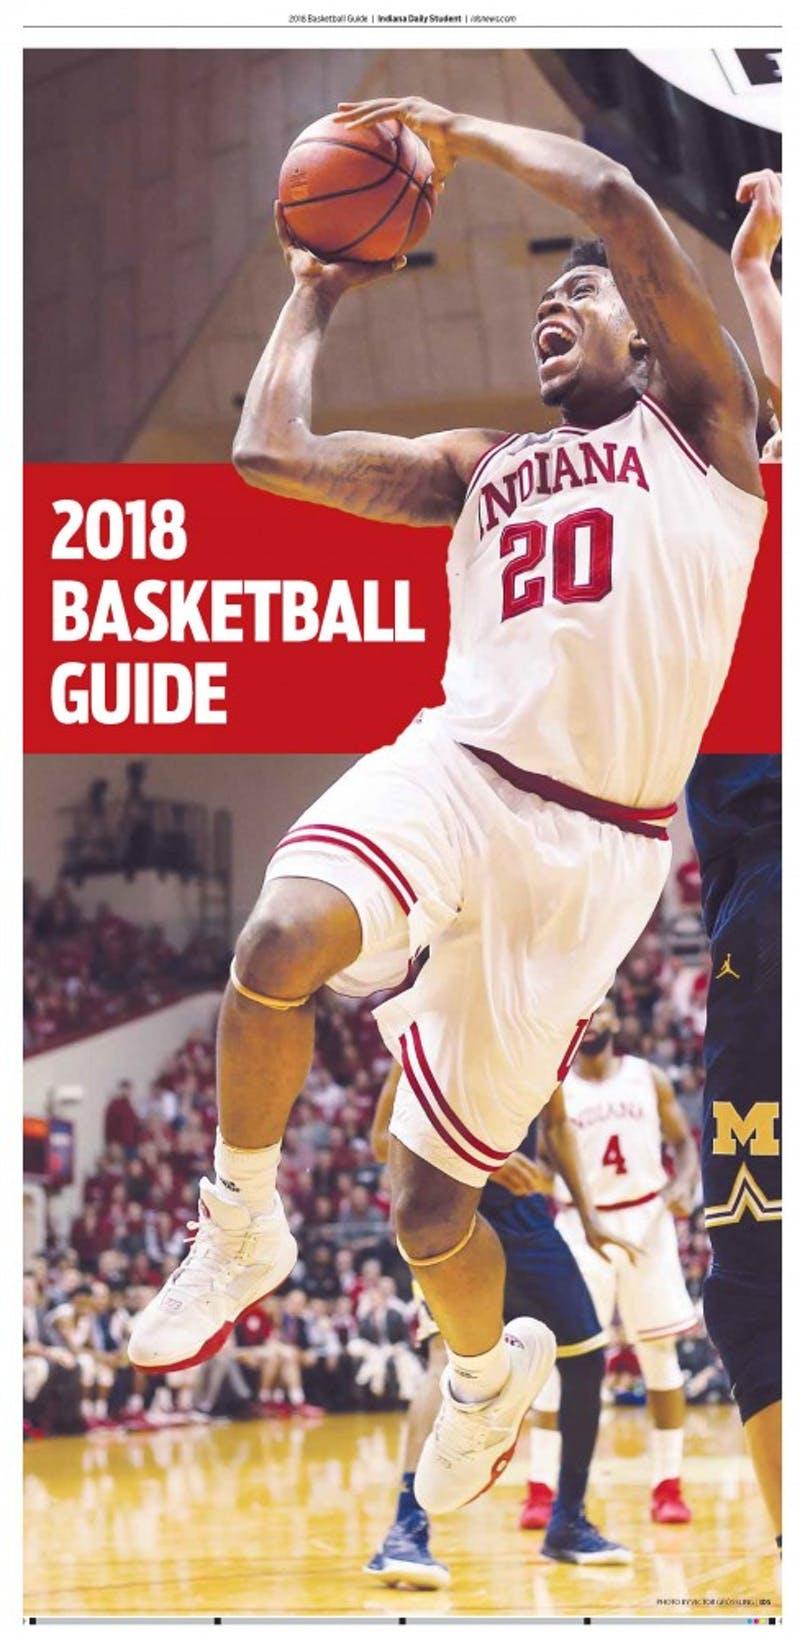 2018 Basketball Guide